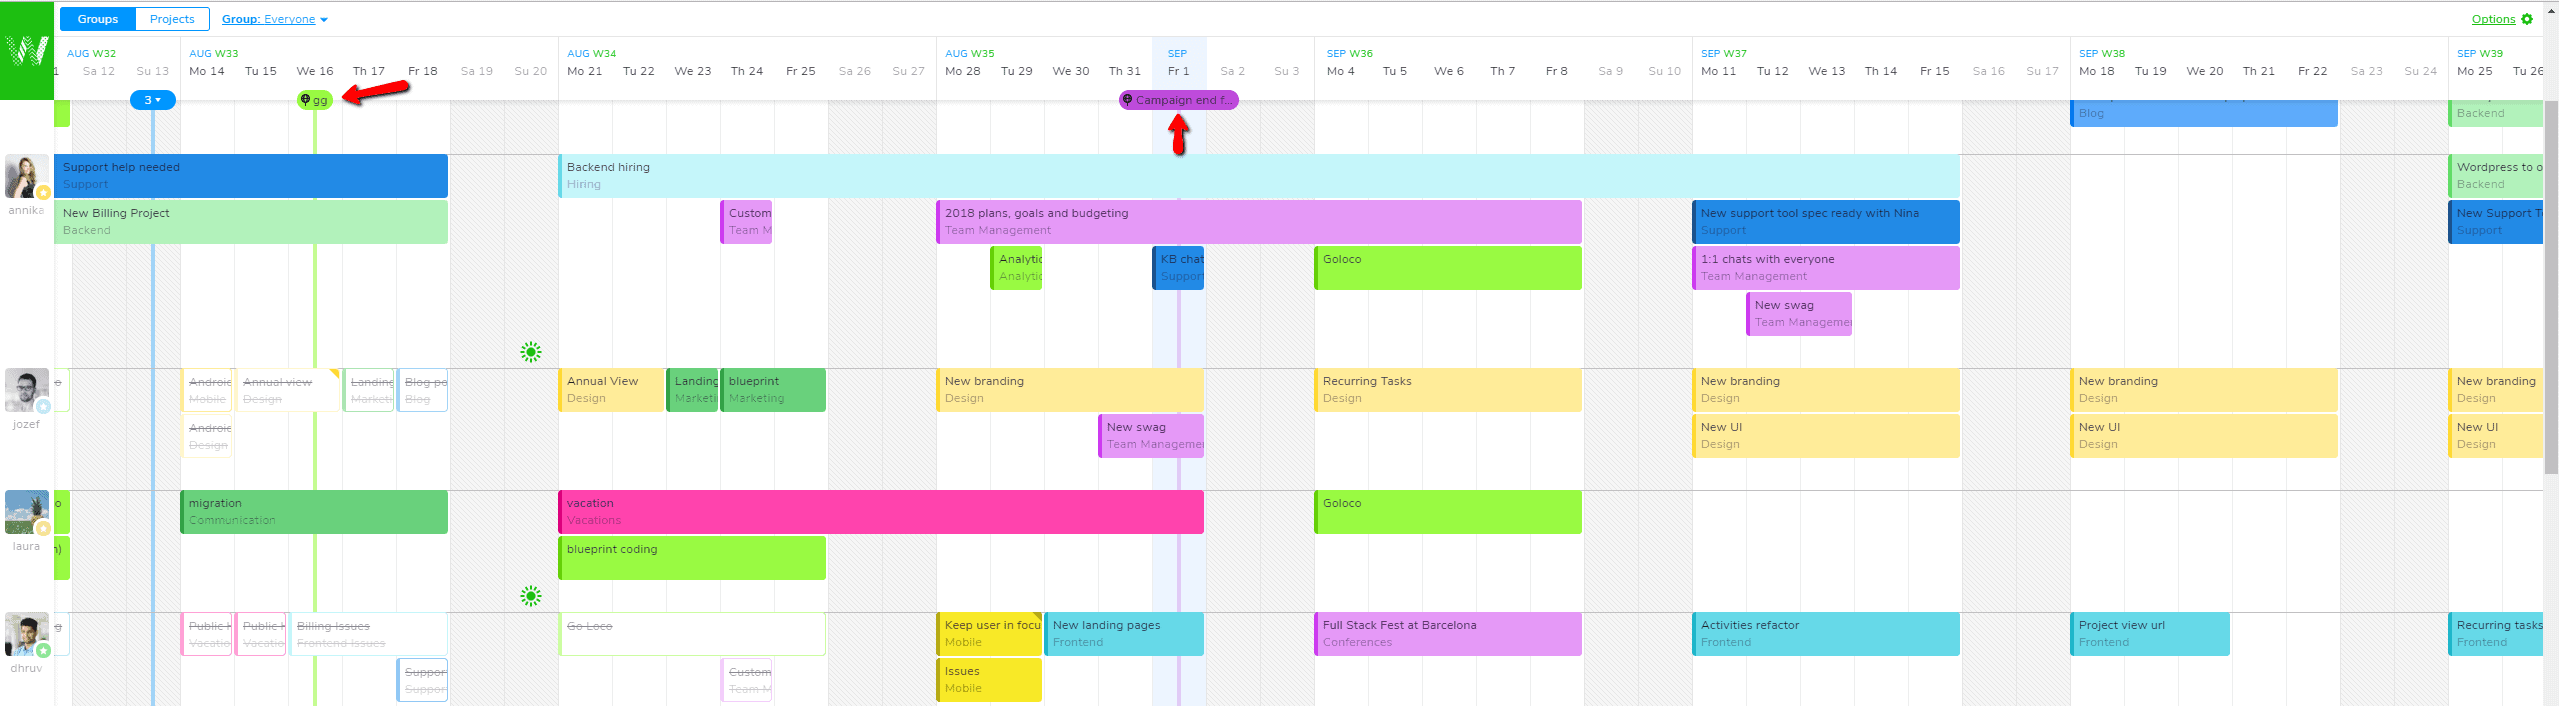 How To Use Gantt Charts And Why Are They Beneficial Teamweek Blog